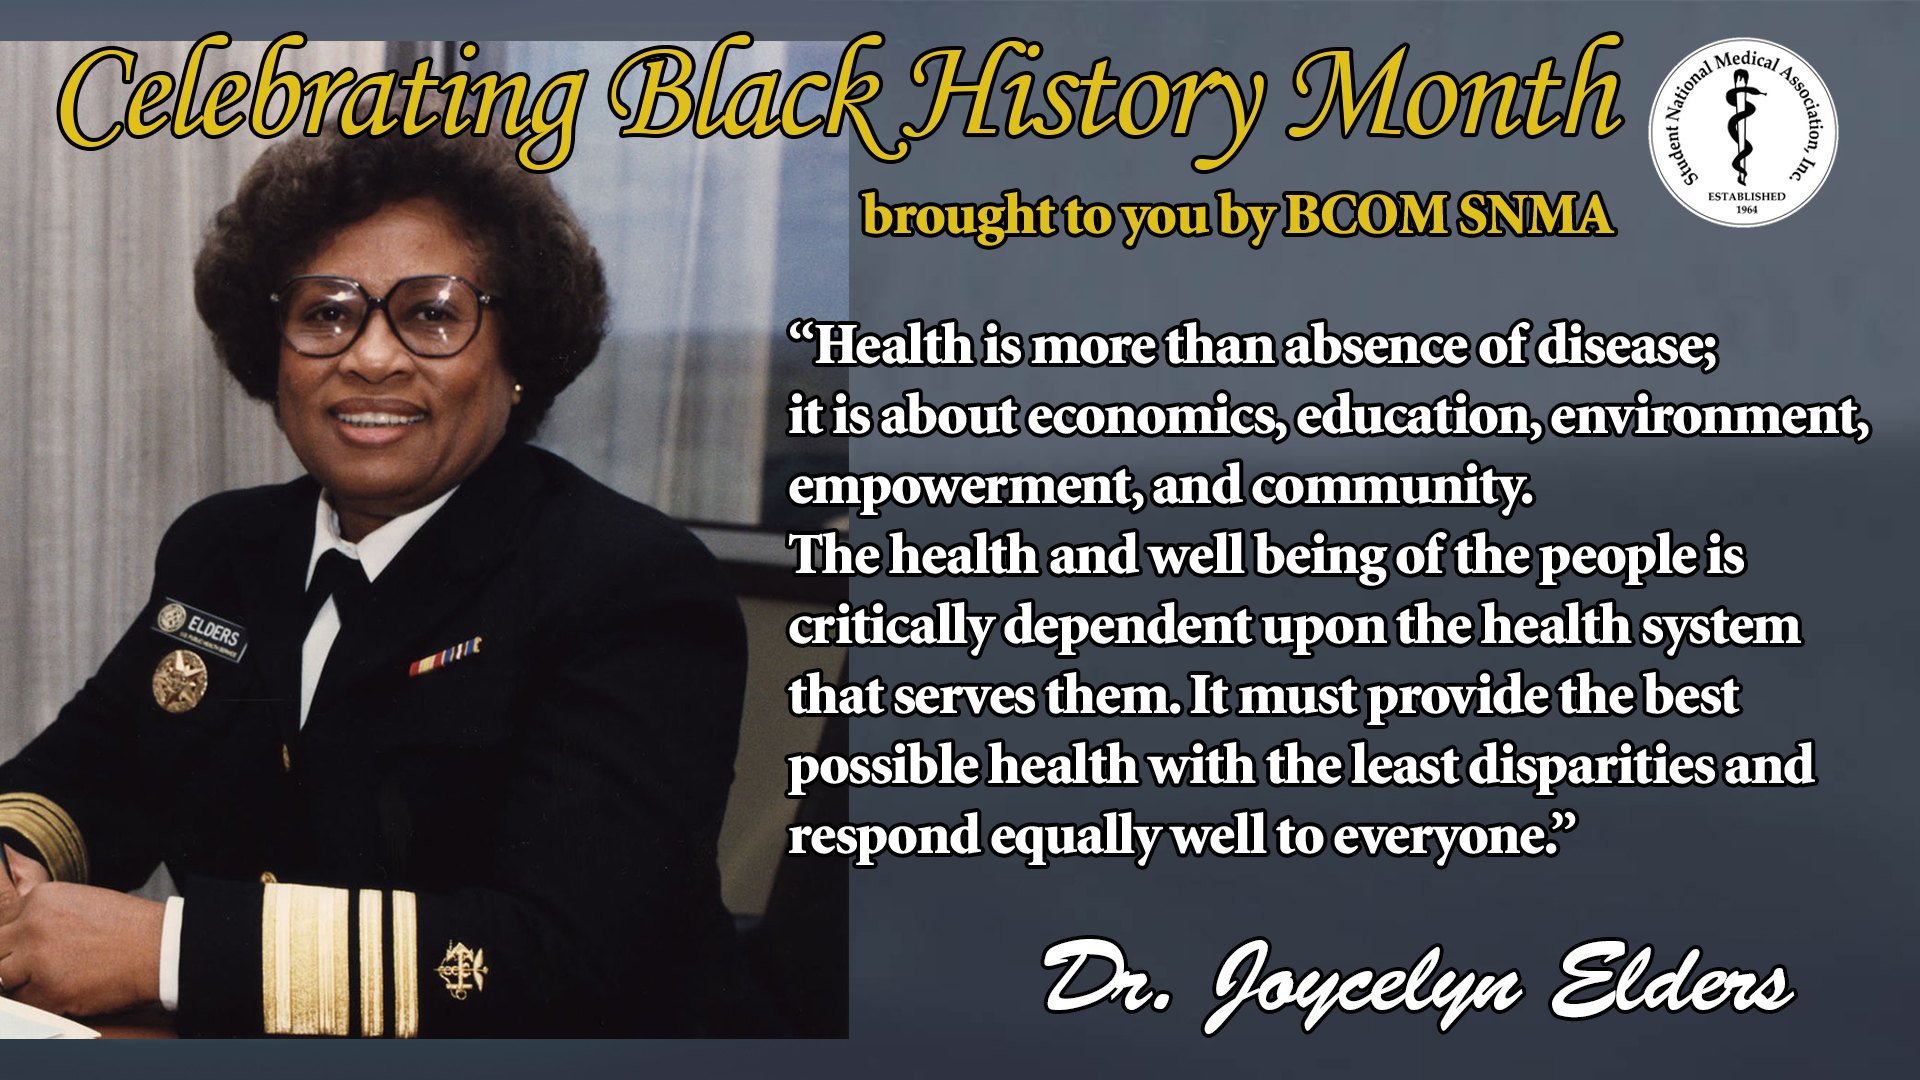 burrell college of osteopathic medicine  u2013 celebrating black history month